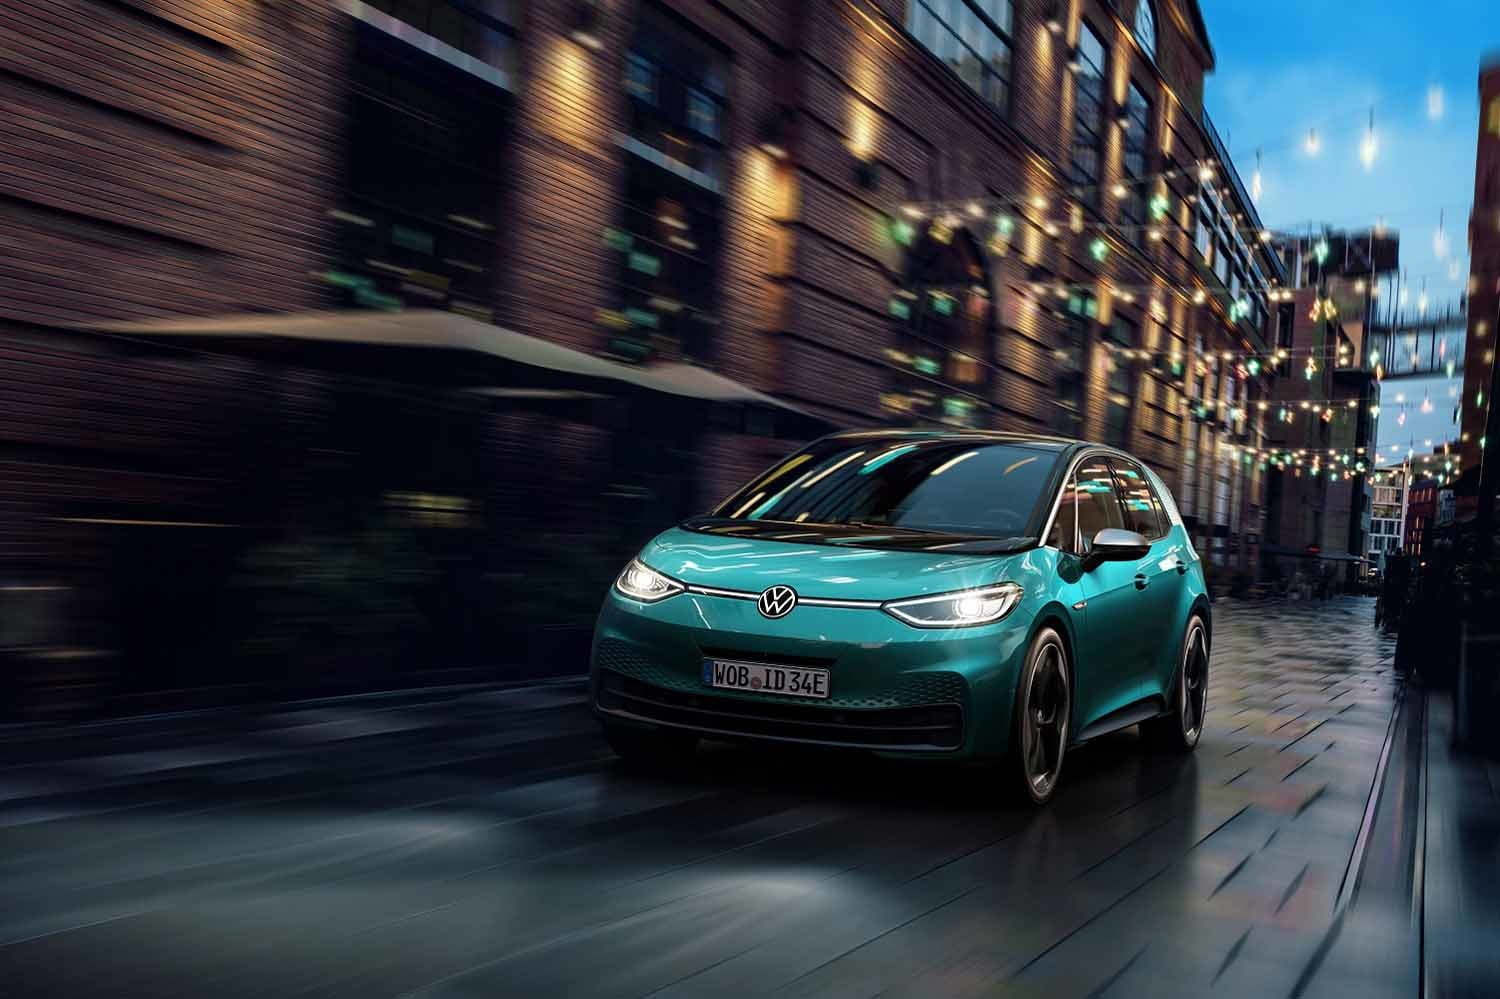 2020 volkswagen id 3 electric car orders open first edition detailed vw official 5